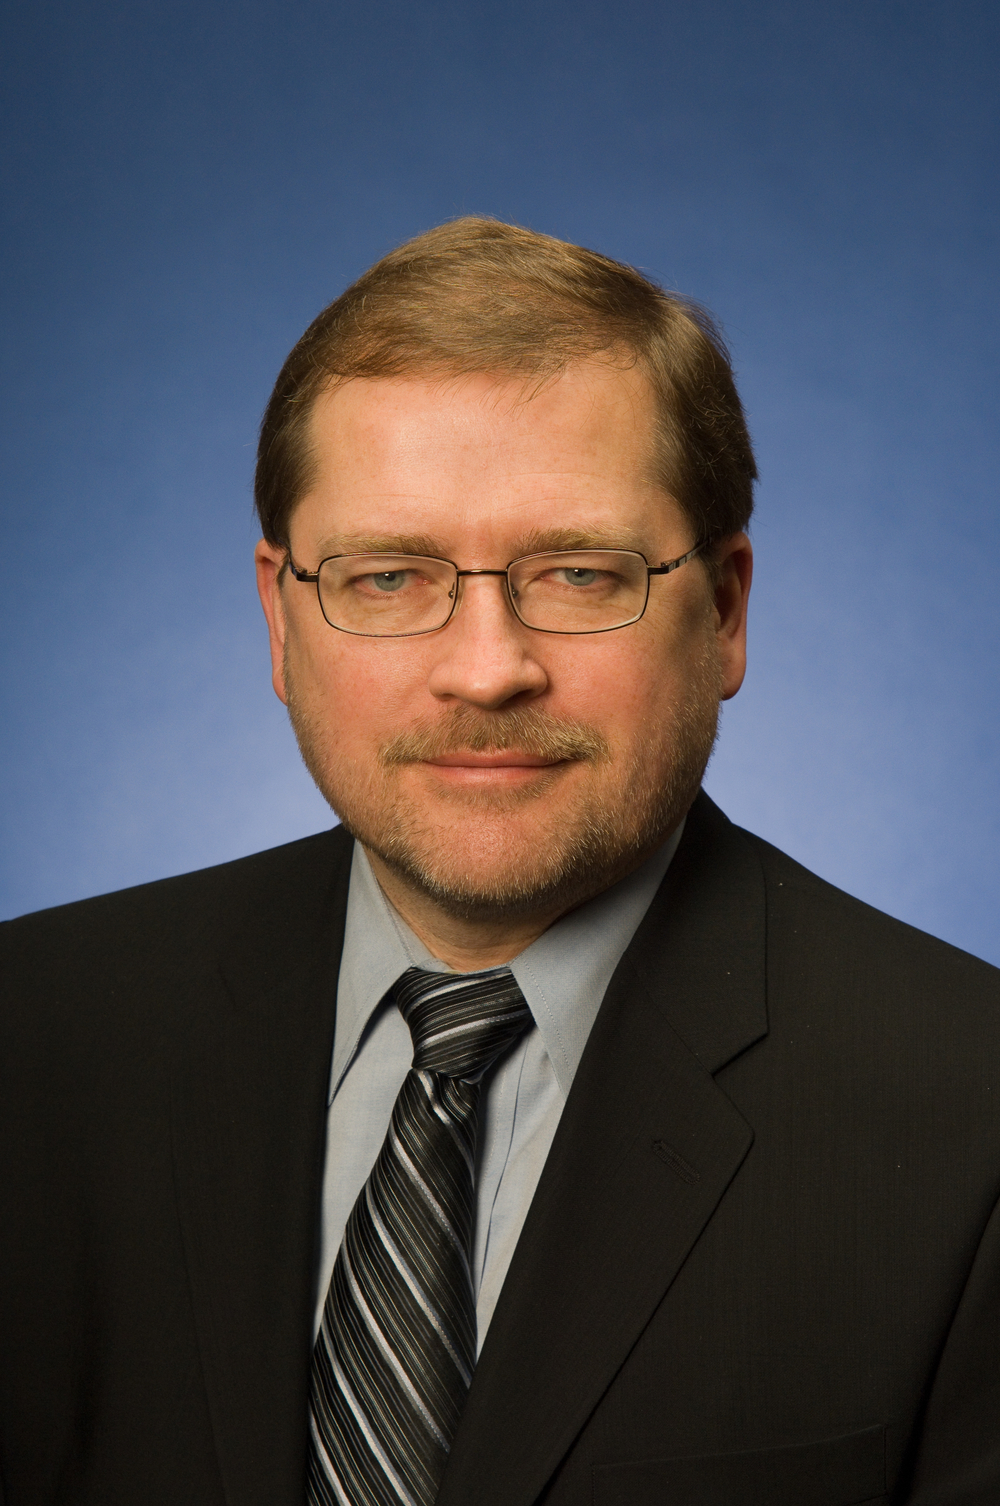 Mr. Grover Norquist